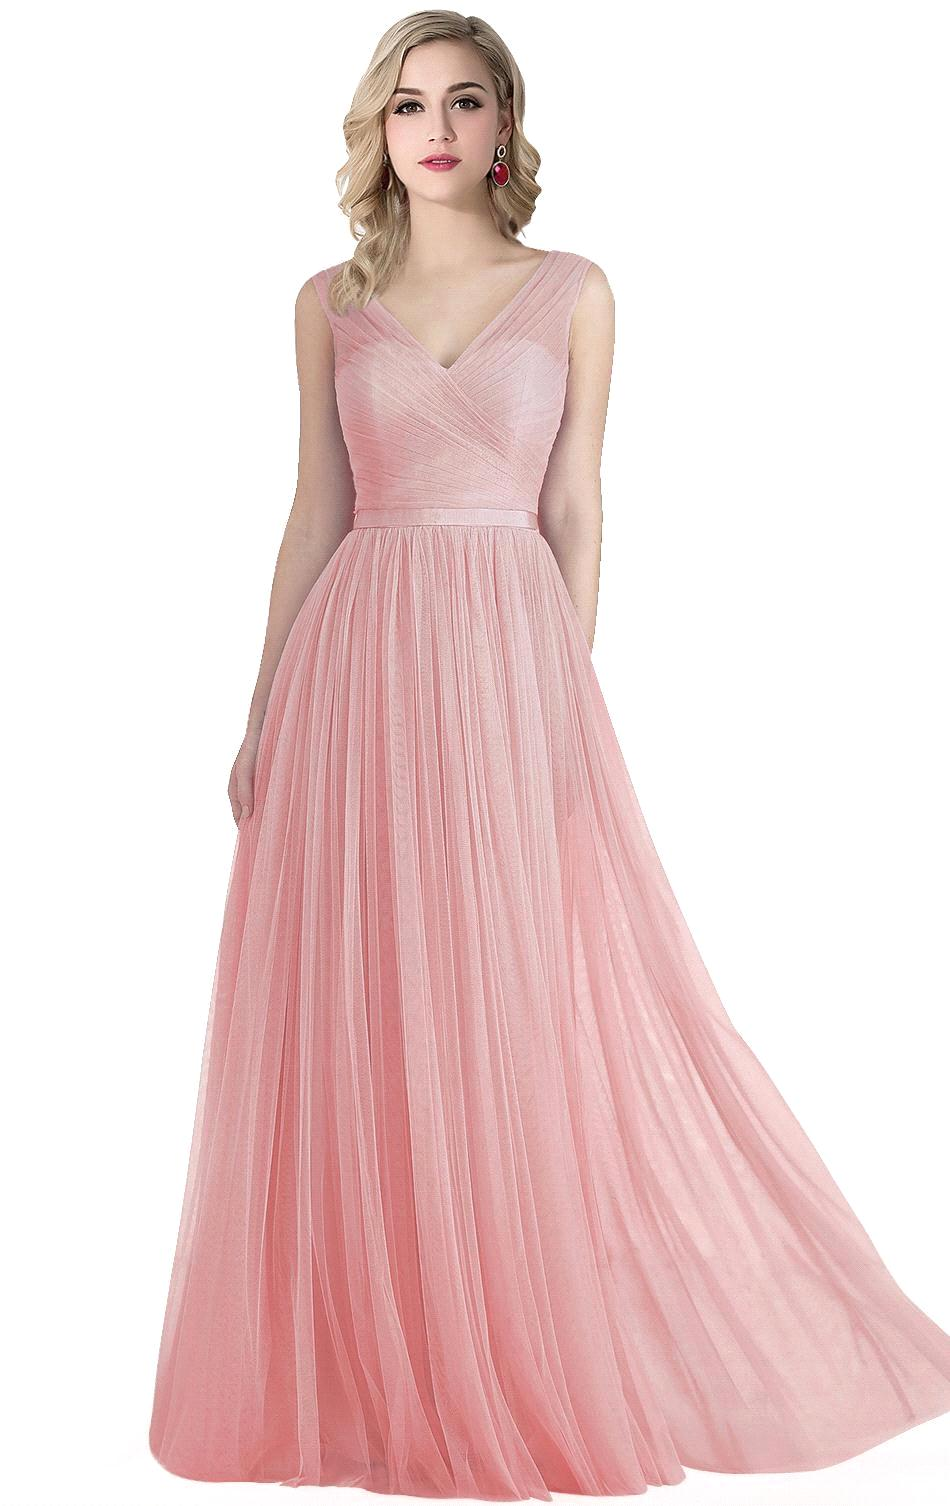 Online get cheap pink long wedding dress aliexpress alibaba vestido festa three styles a line cheap price light pink chiffon long bridesmaid dresses 2017 wedding ombrellifo Image collections